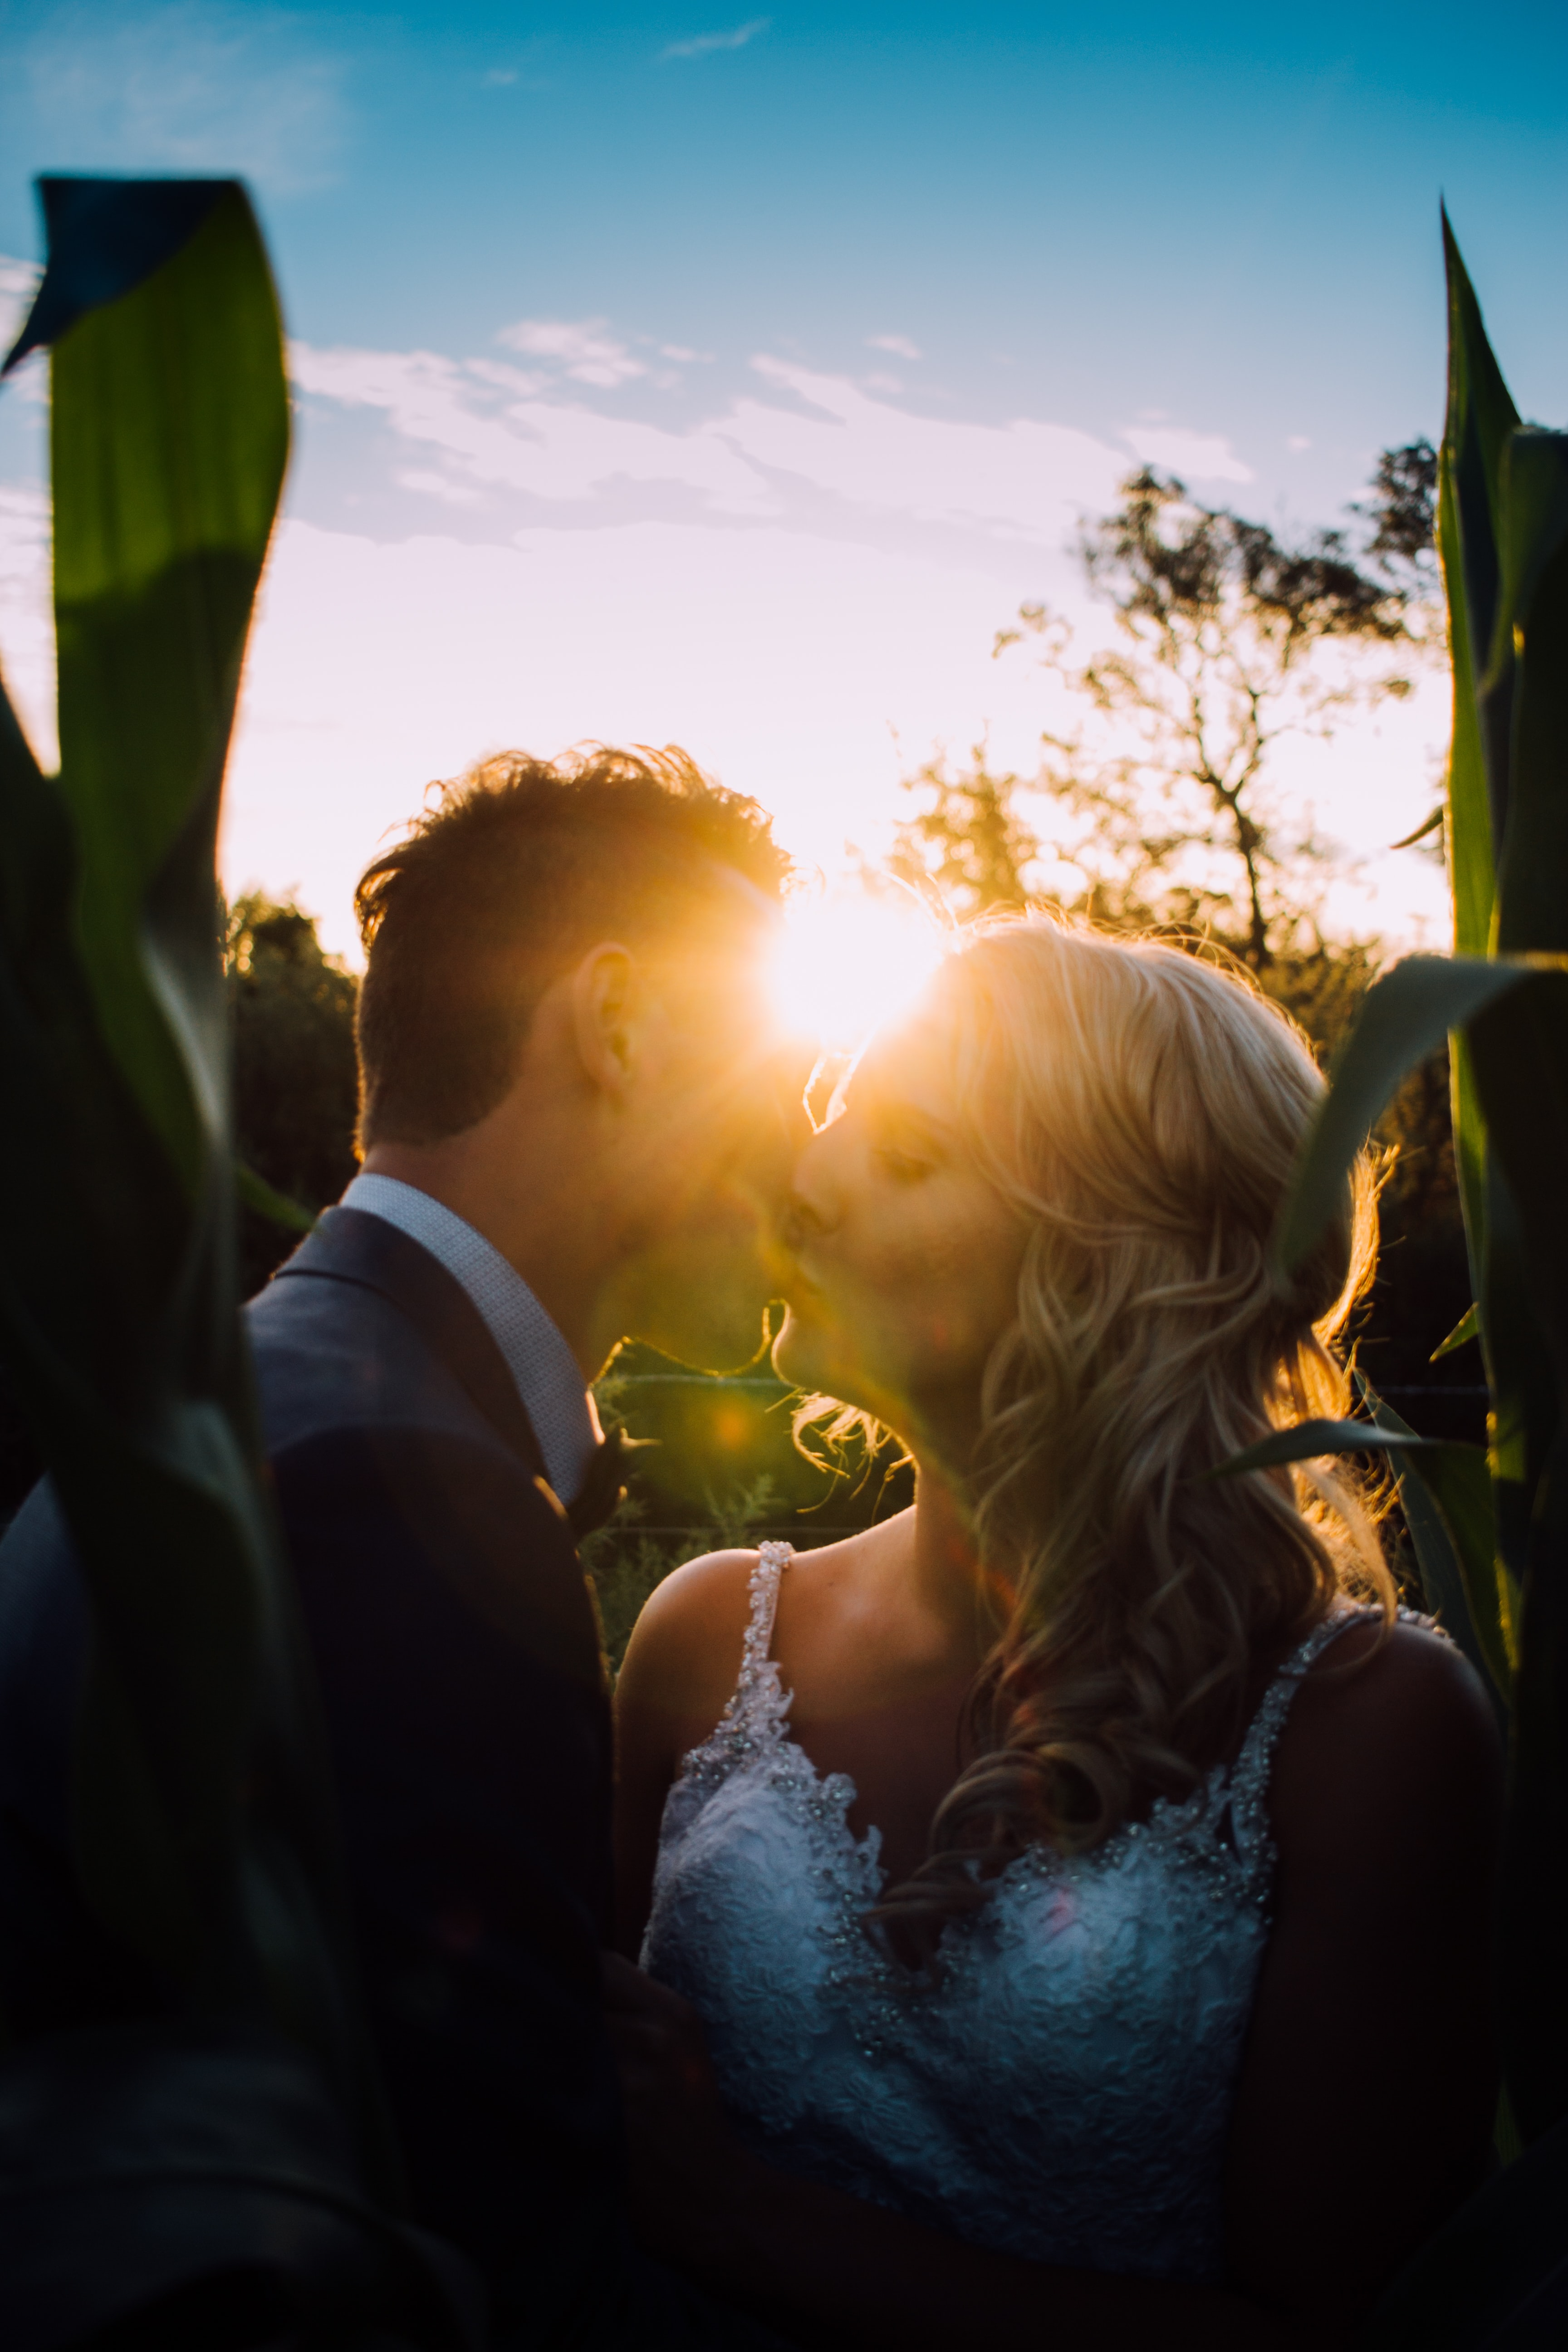 A bride and groom kiss each other at their wedding, the sun shining brightly in the background